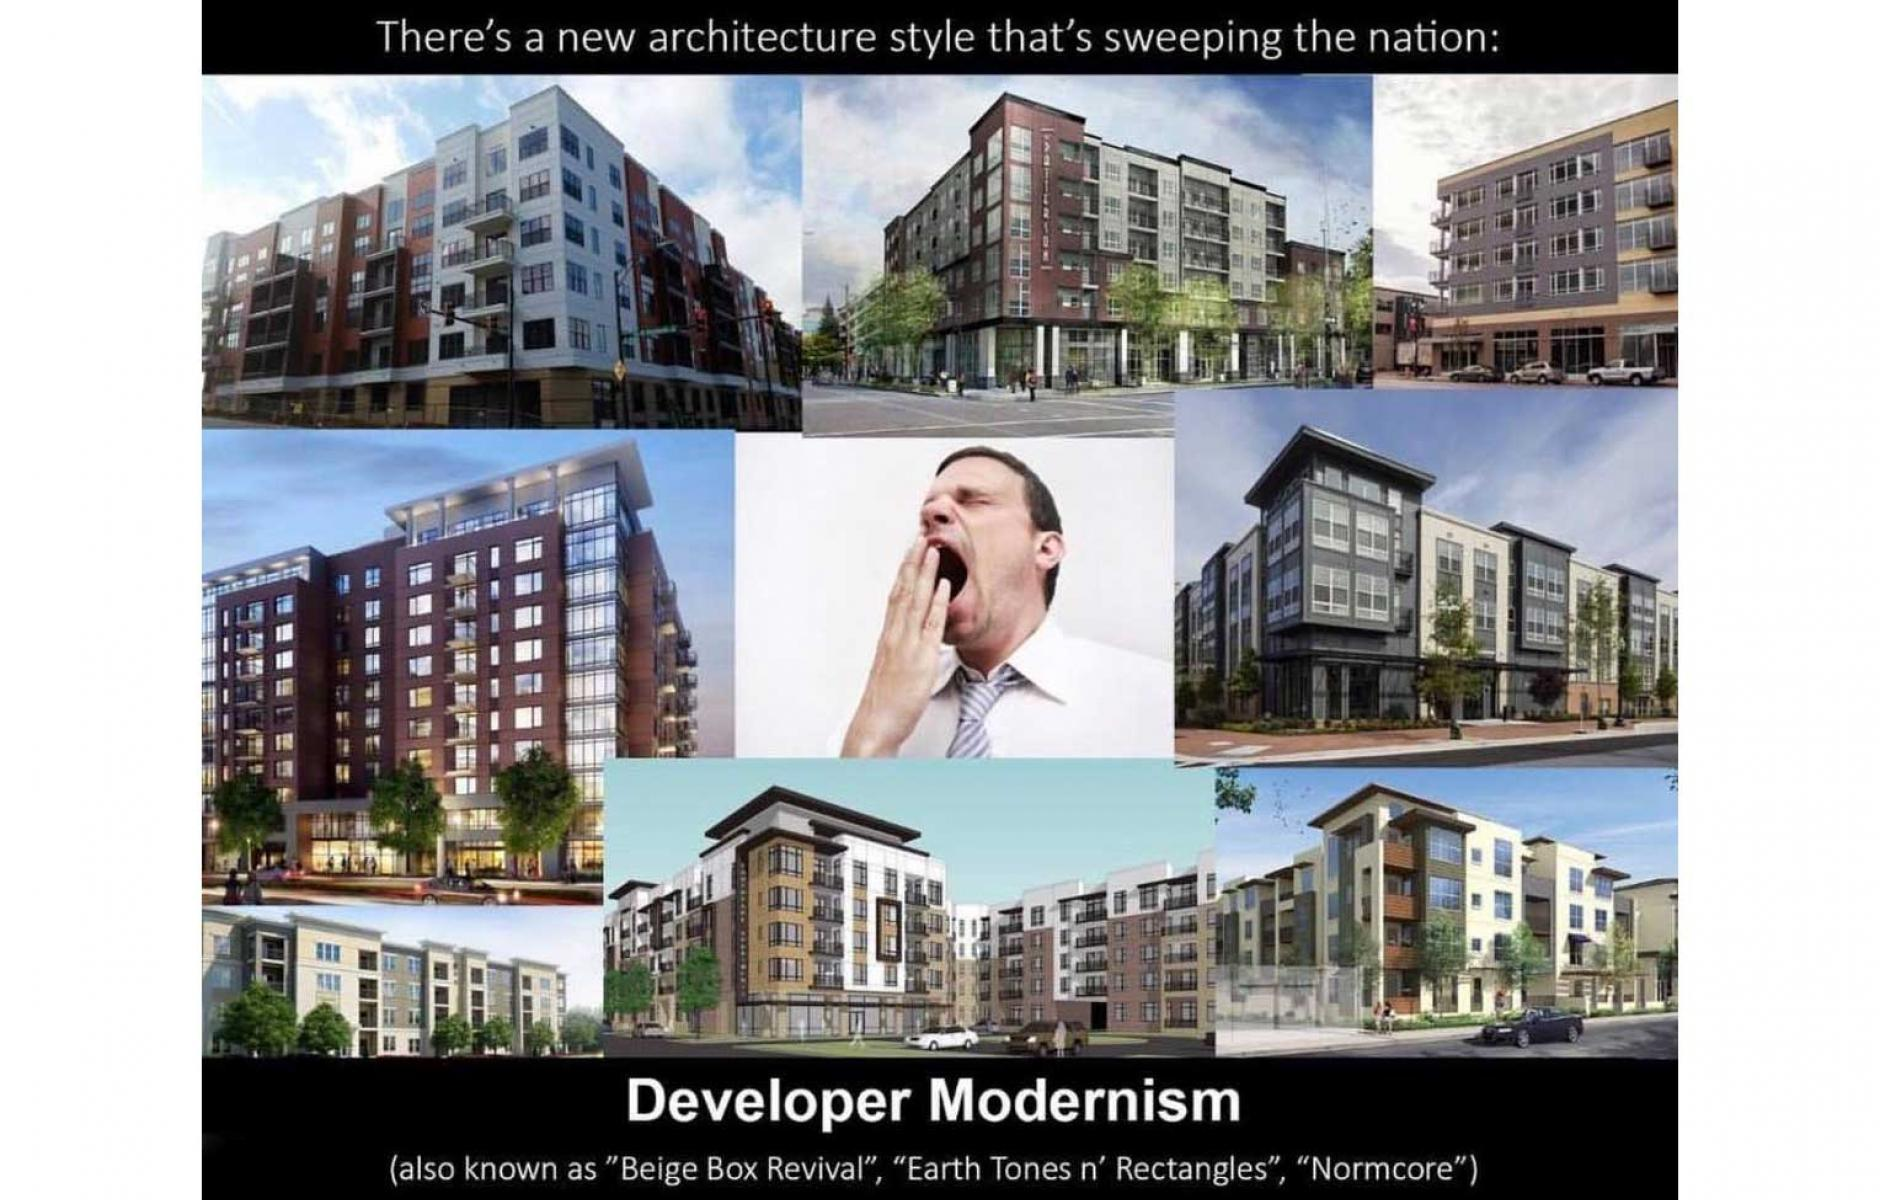 developer-modernism.jpg